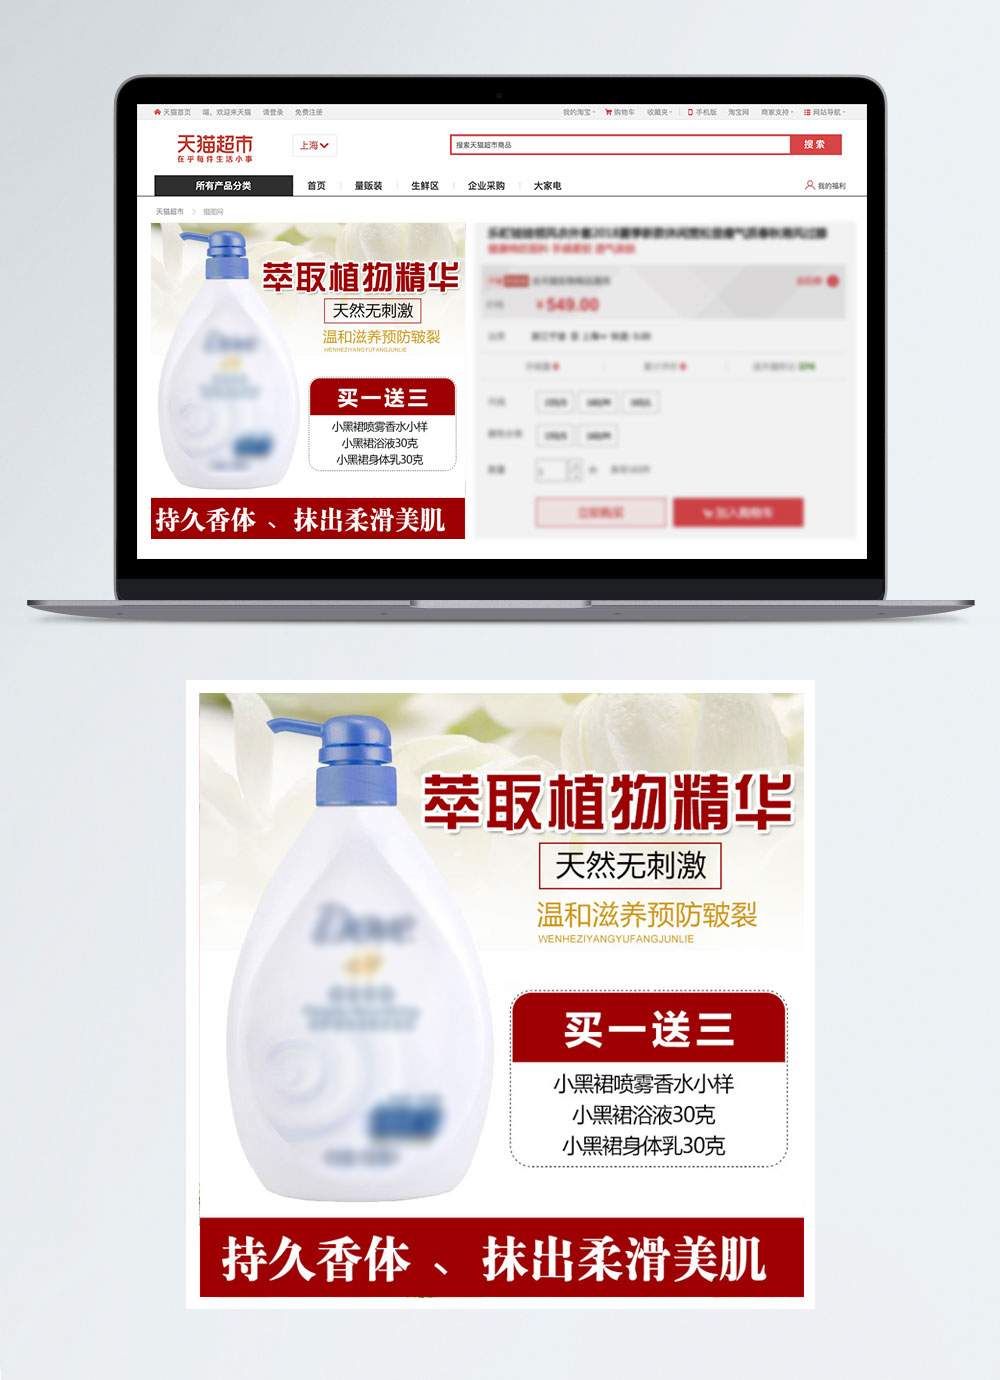 Shower sales promotion master map template image_picture free ...